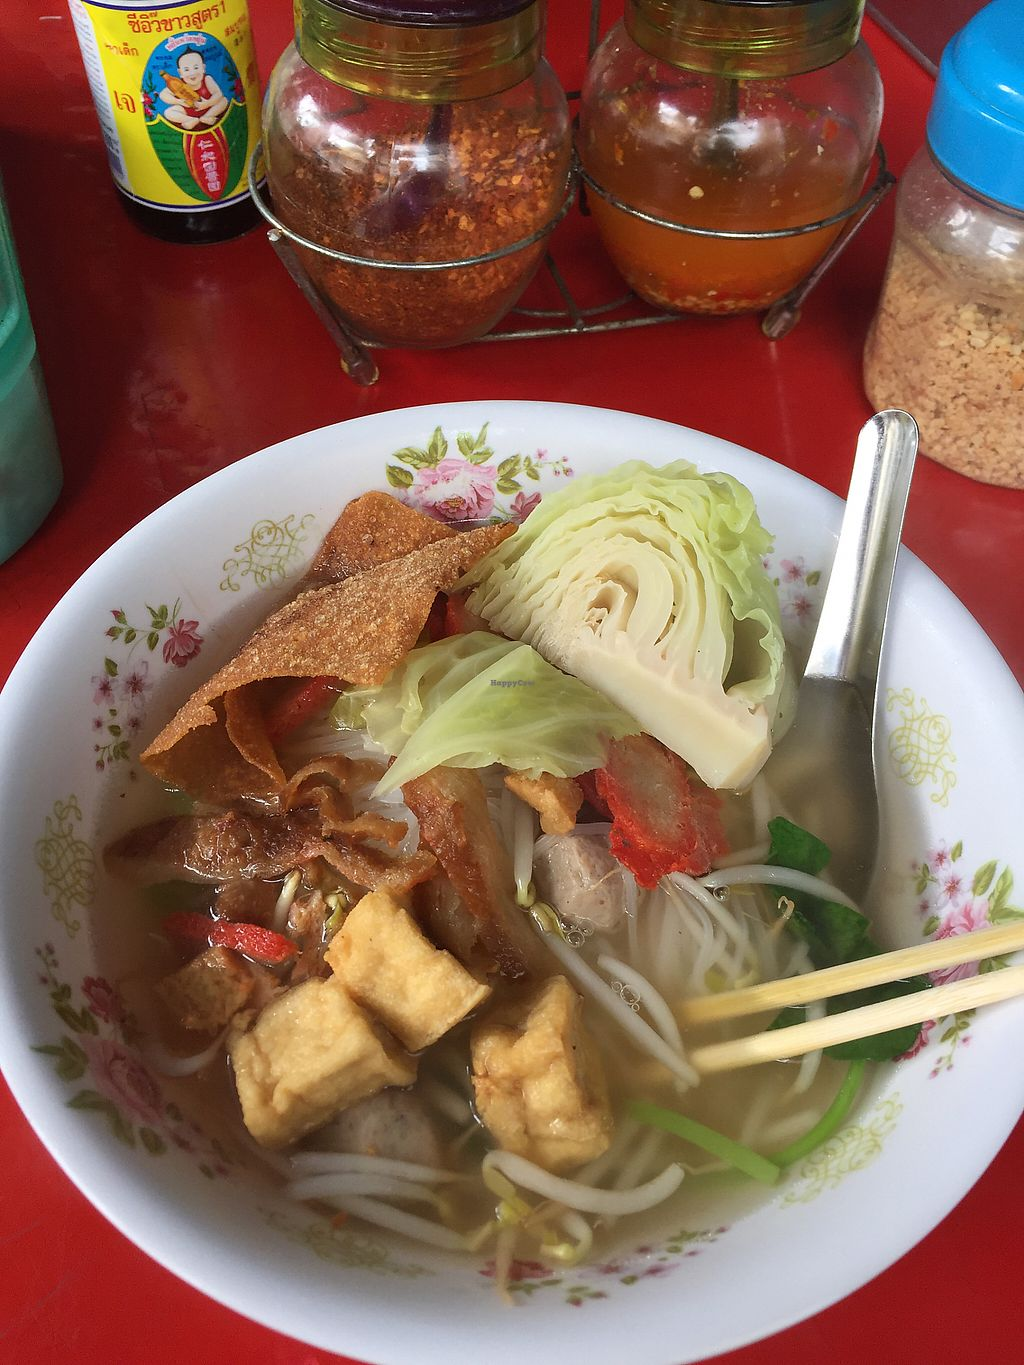 """Photo of Pan Road - Vegan Food Cart  by <a href=""""/members/profile/Bobozmom"""">Bobozmom</a> <br/>vegan noodle soup <br/> May 20, 2017  - <a href='/contact/abuse/image/88695/260541'>Report</a>"""